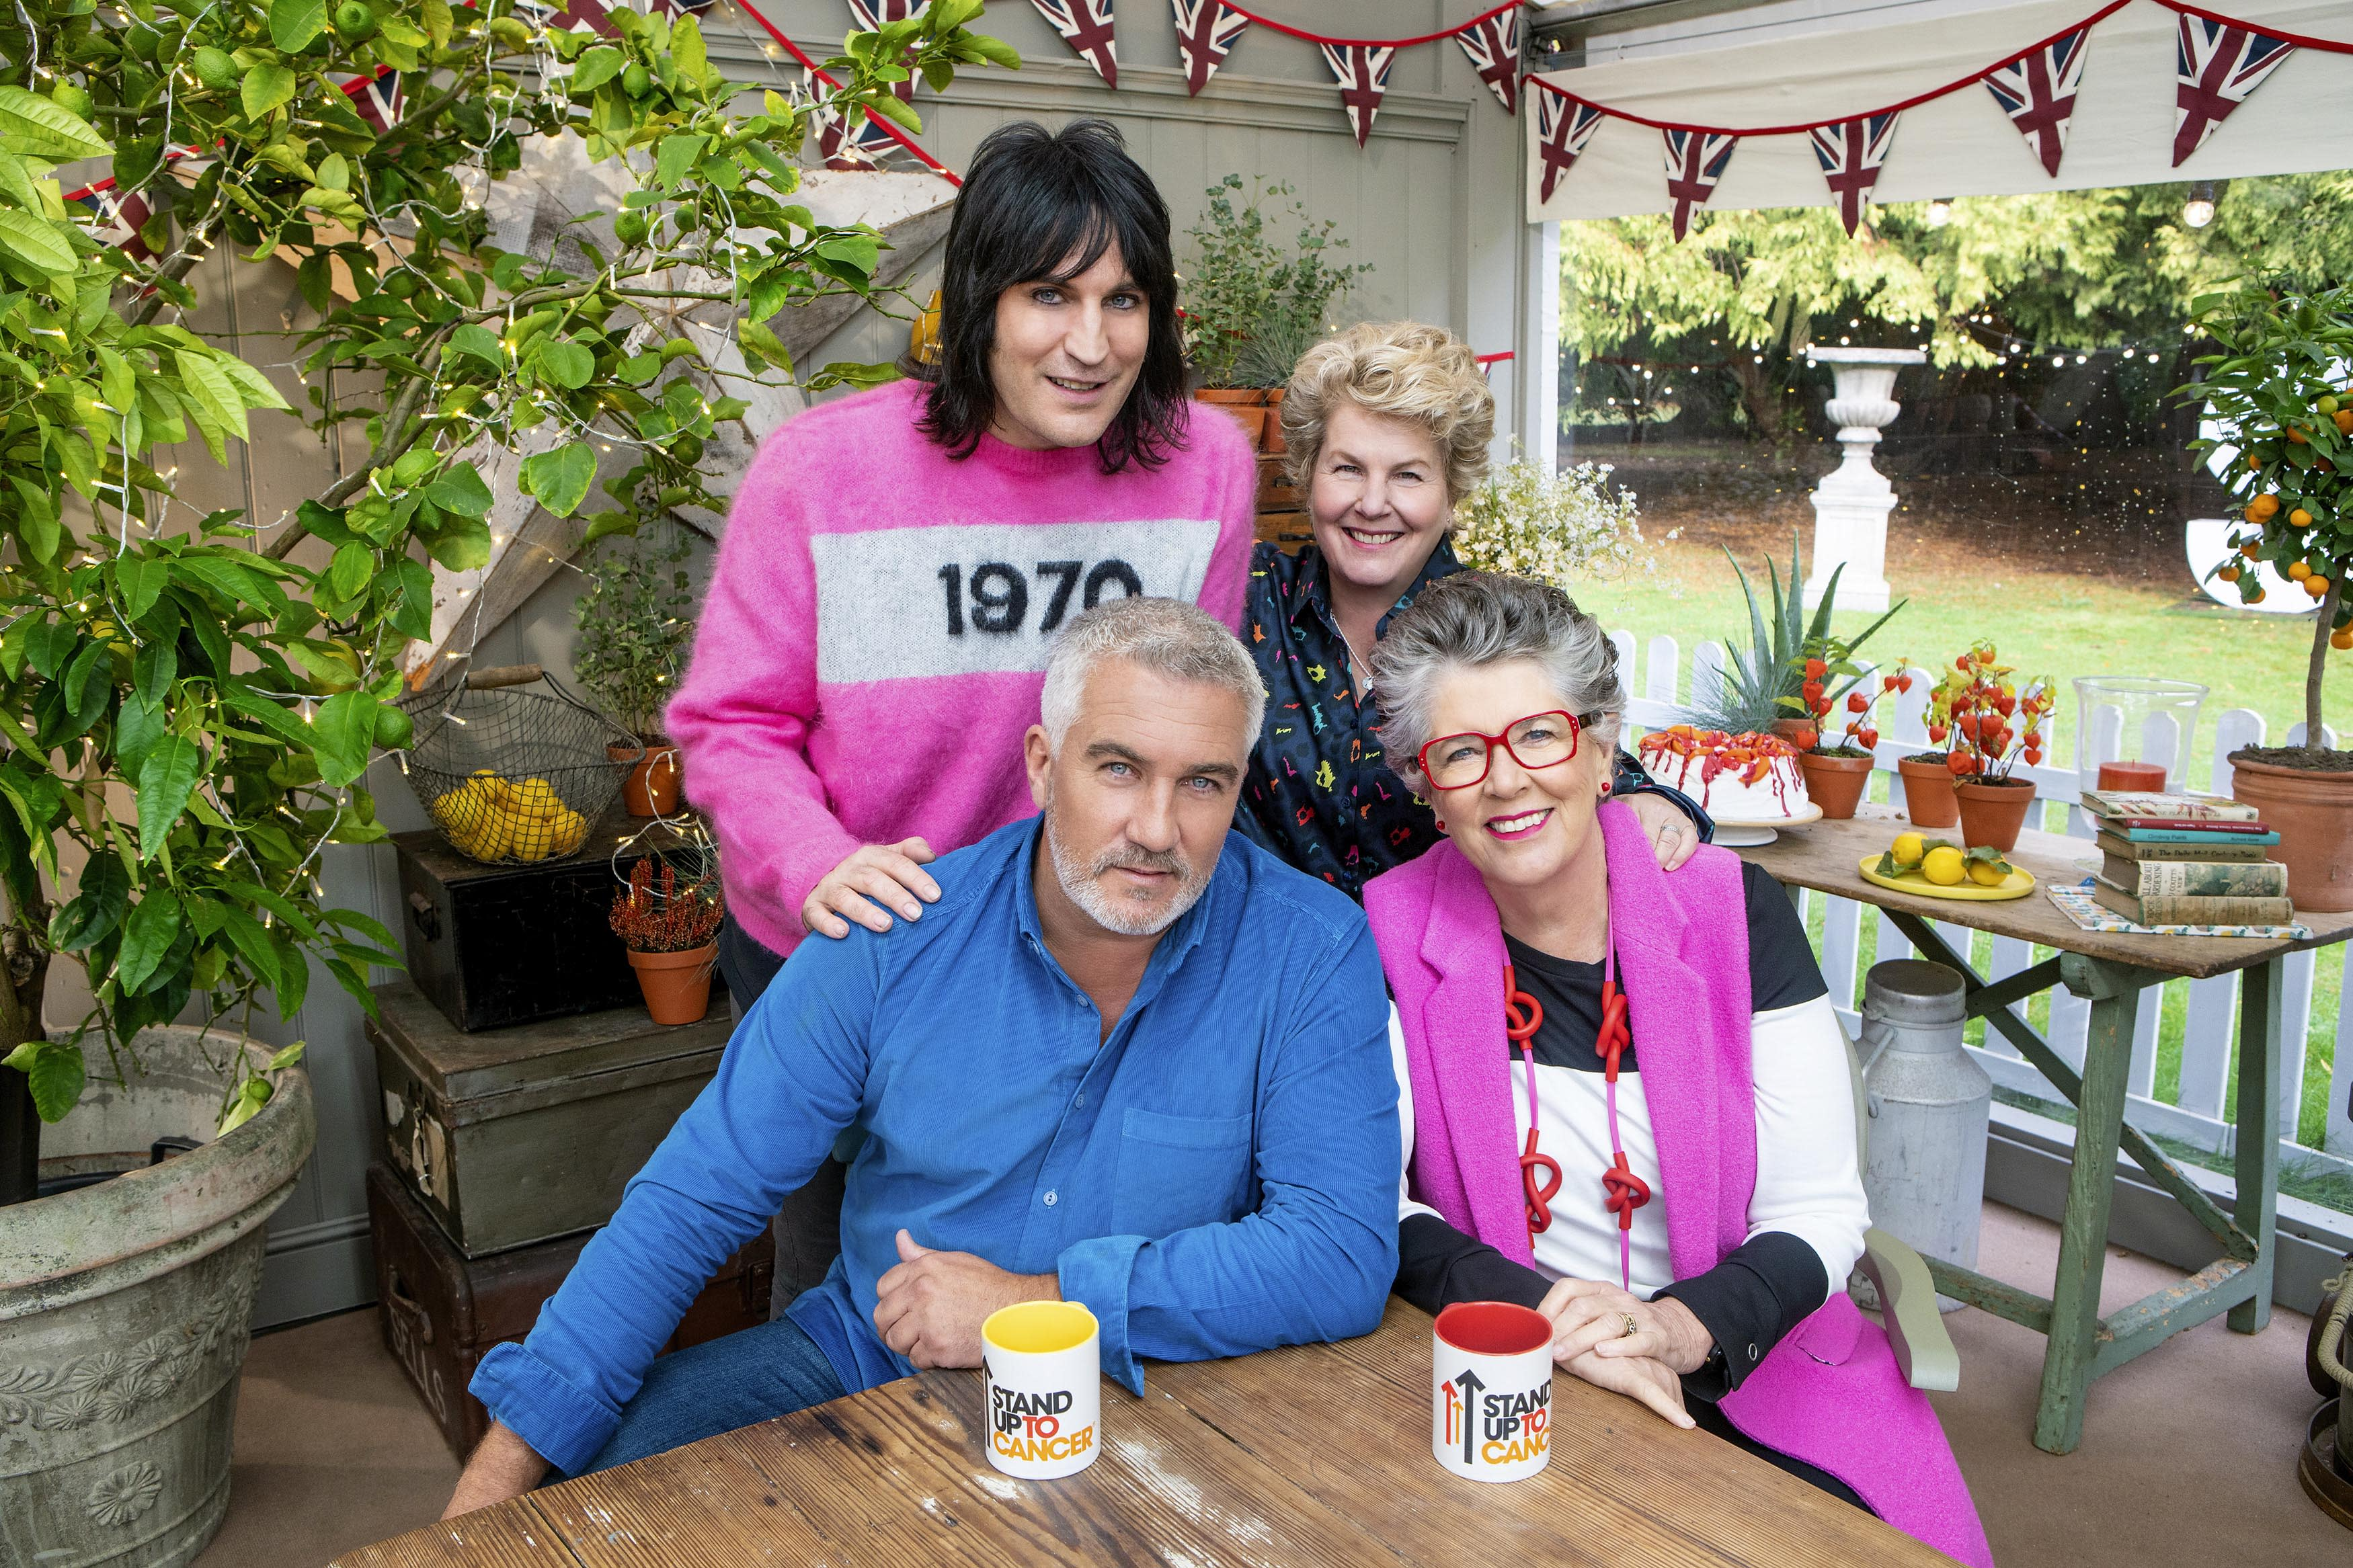 'The Great Stand Up To Cancer Bake Off' is hosted by Noel Fielding and Sandi Toksvig on Channel 4 (Channel 4/Mark Bourdillon)